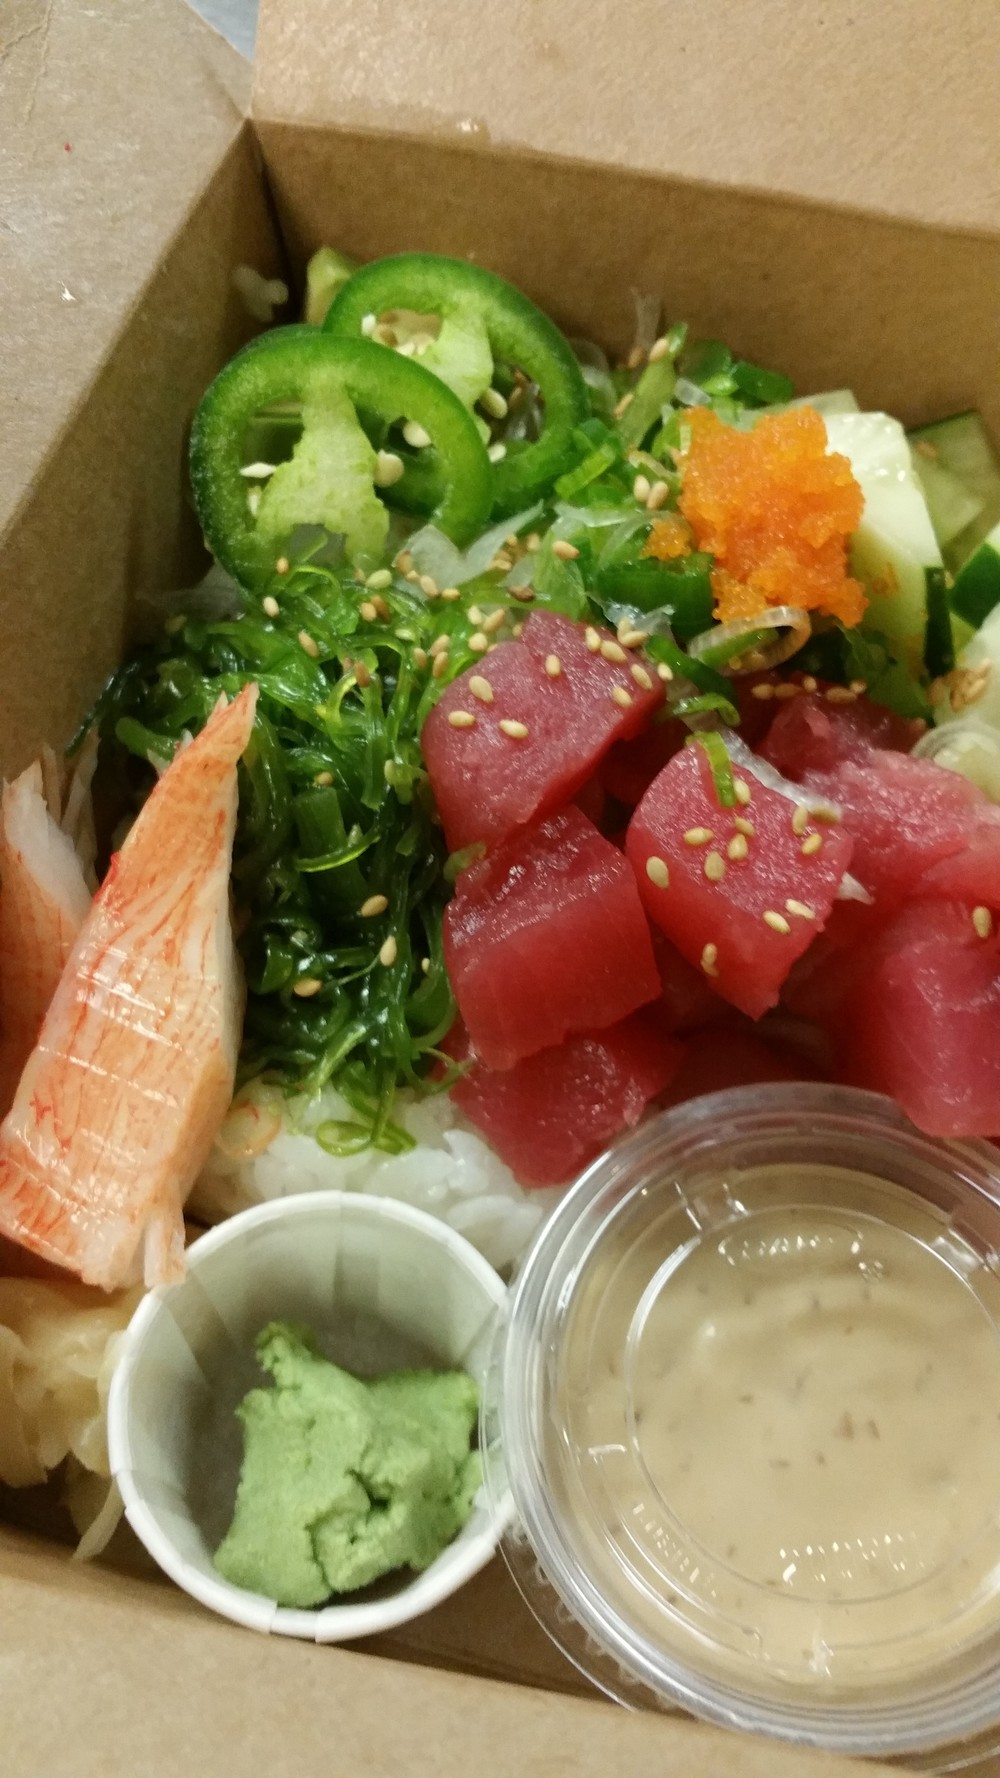 Ahi tuna chirashi box to go   $13.99